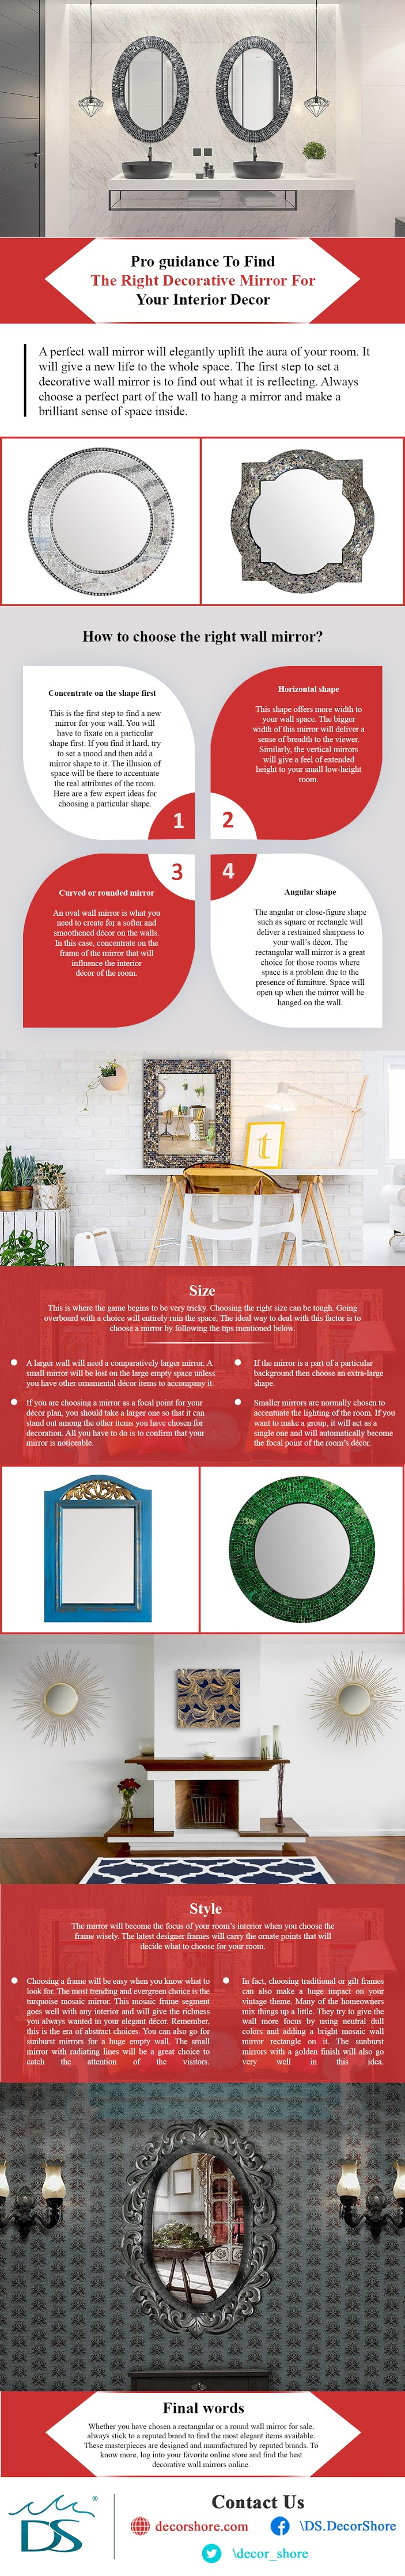 Pro Guidance To Find The Right Decorative Mirror For Your Interior Decor #infographic #Home #Home Improvement